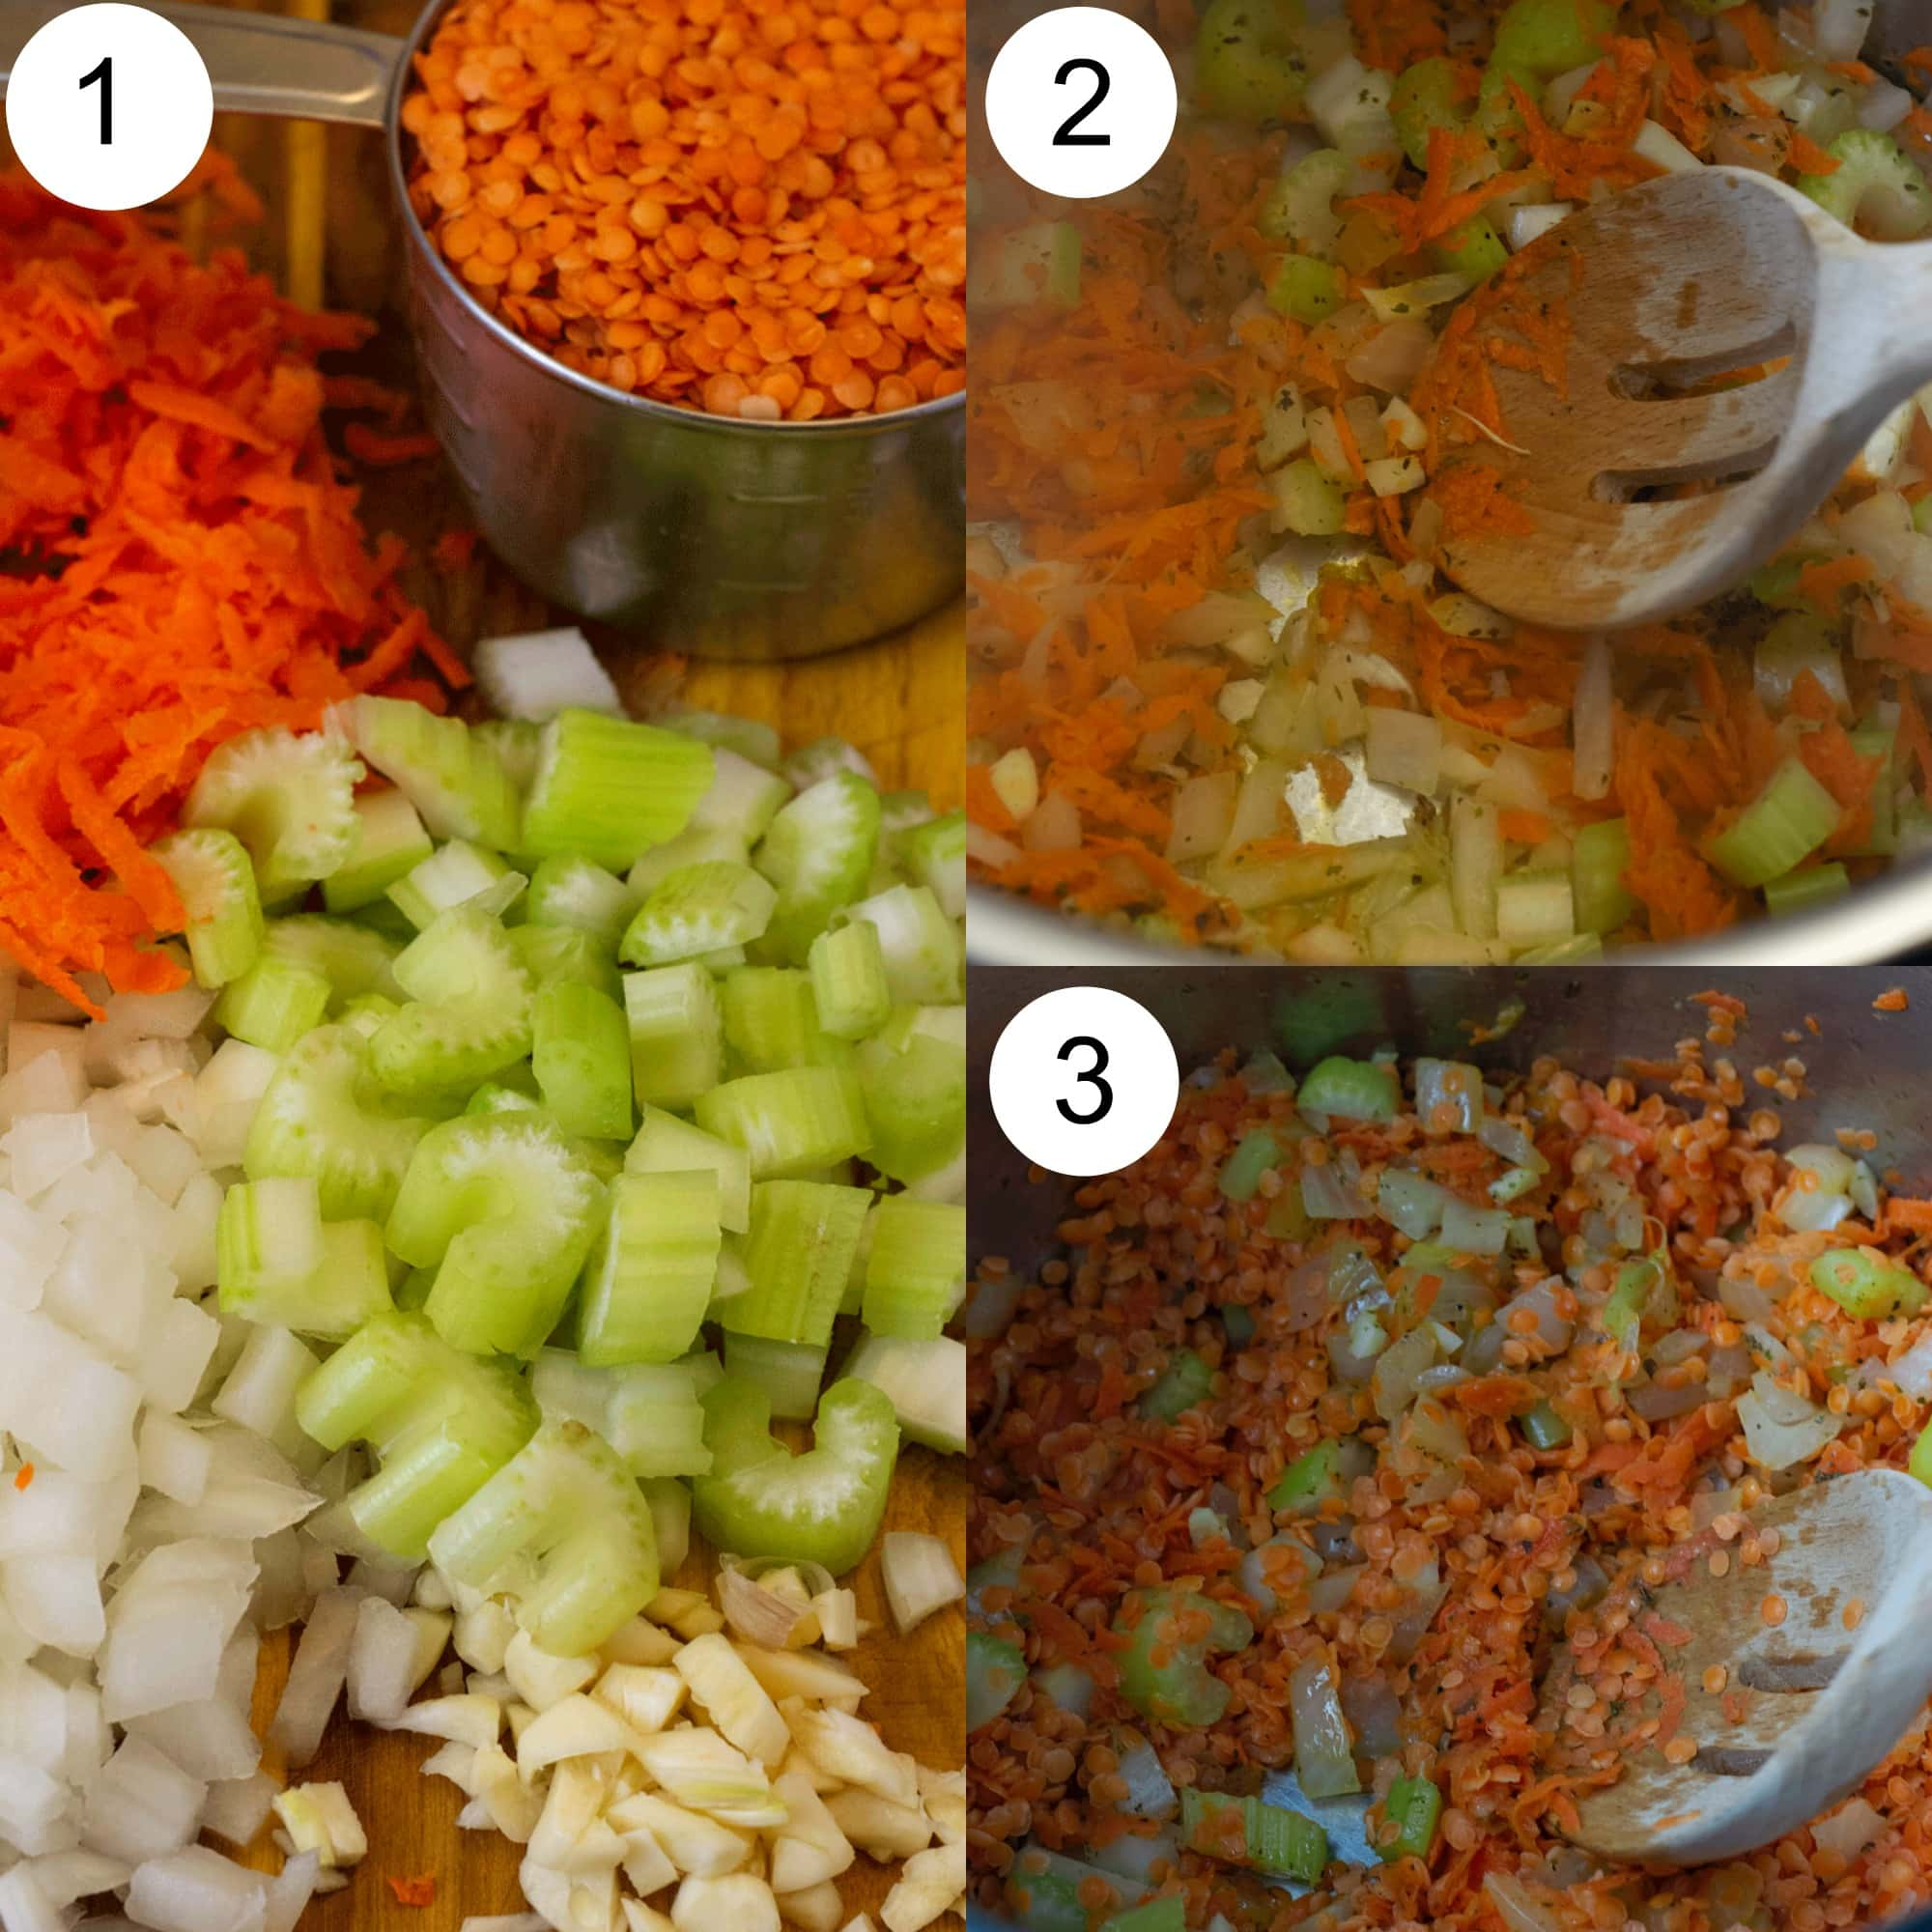 How to make instant pot red lentil soup step by step